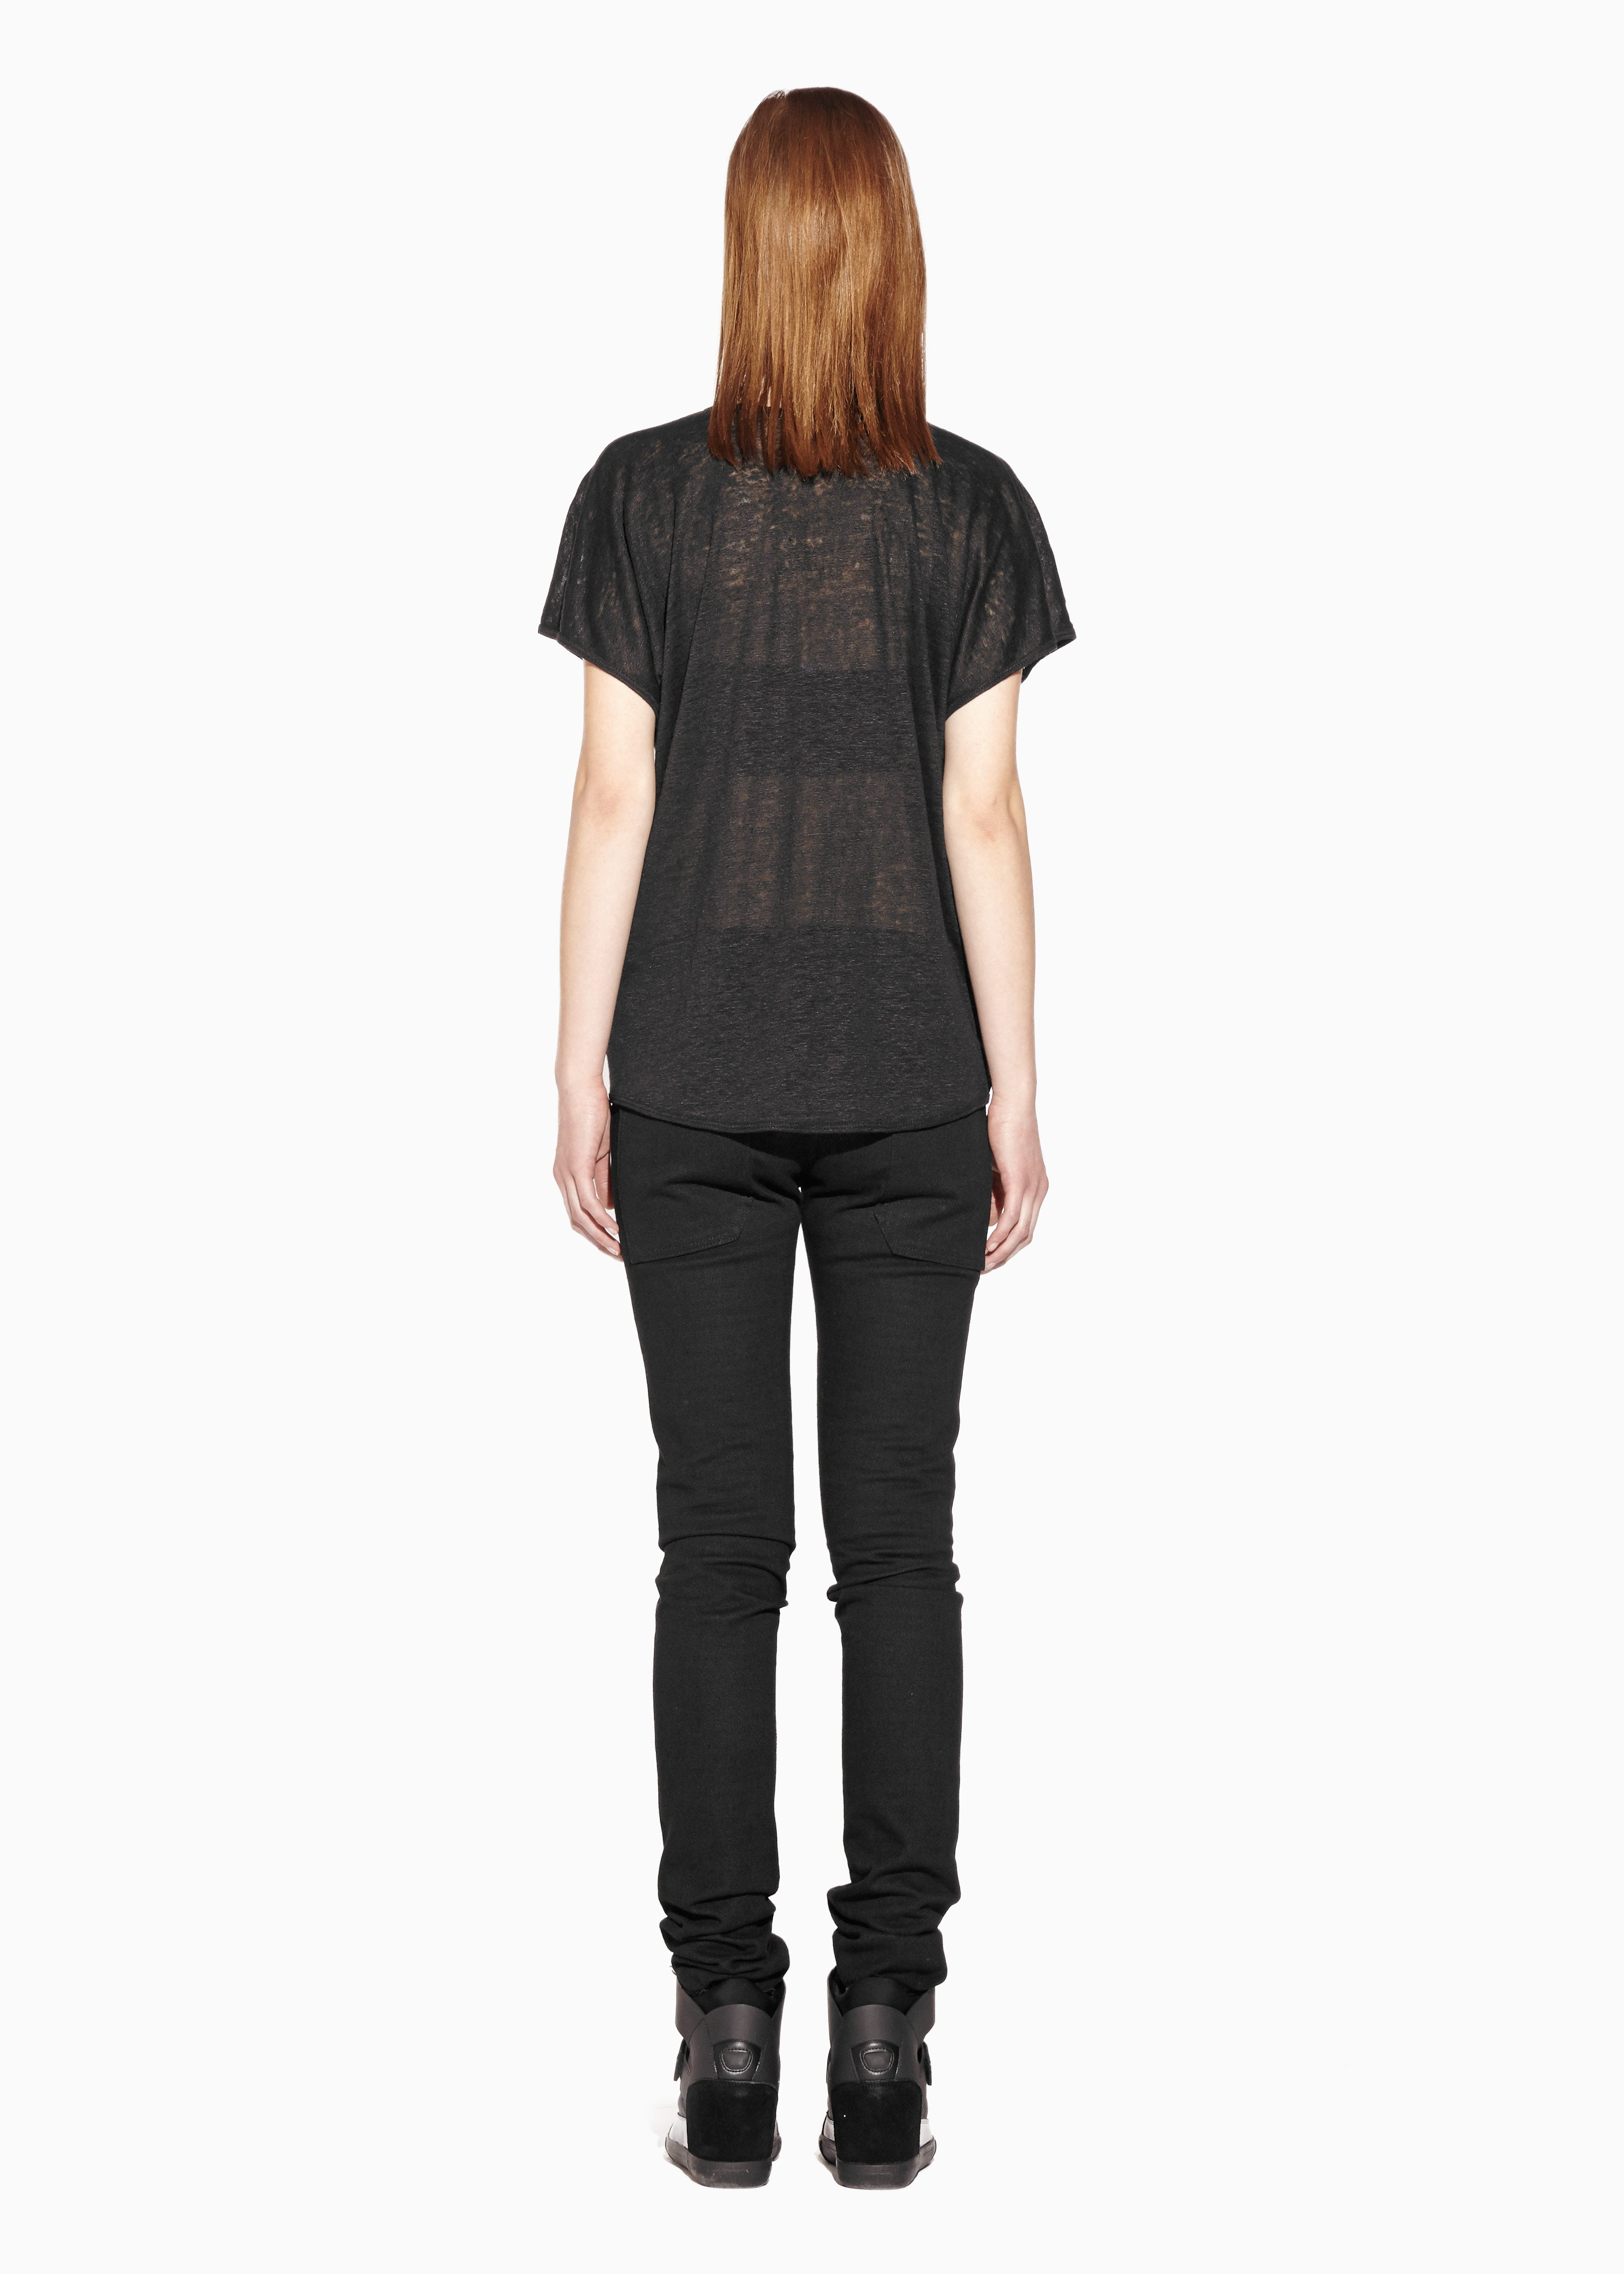 FREEDOM V TOP Linen Jersey